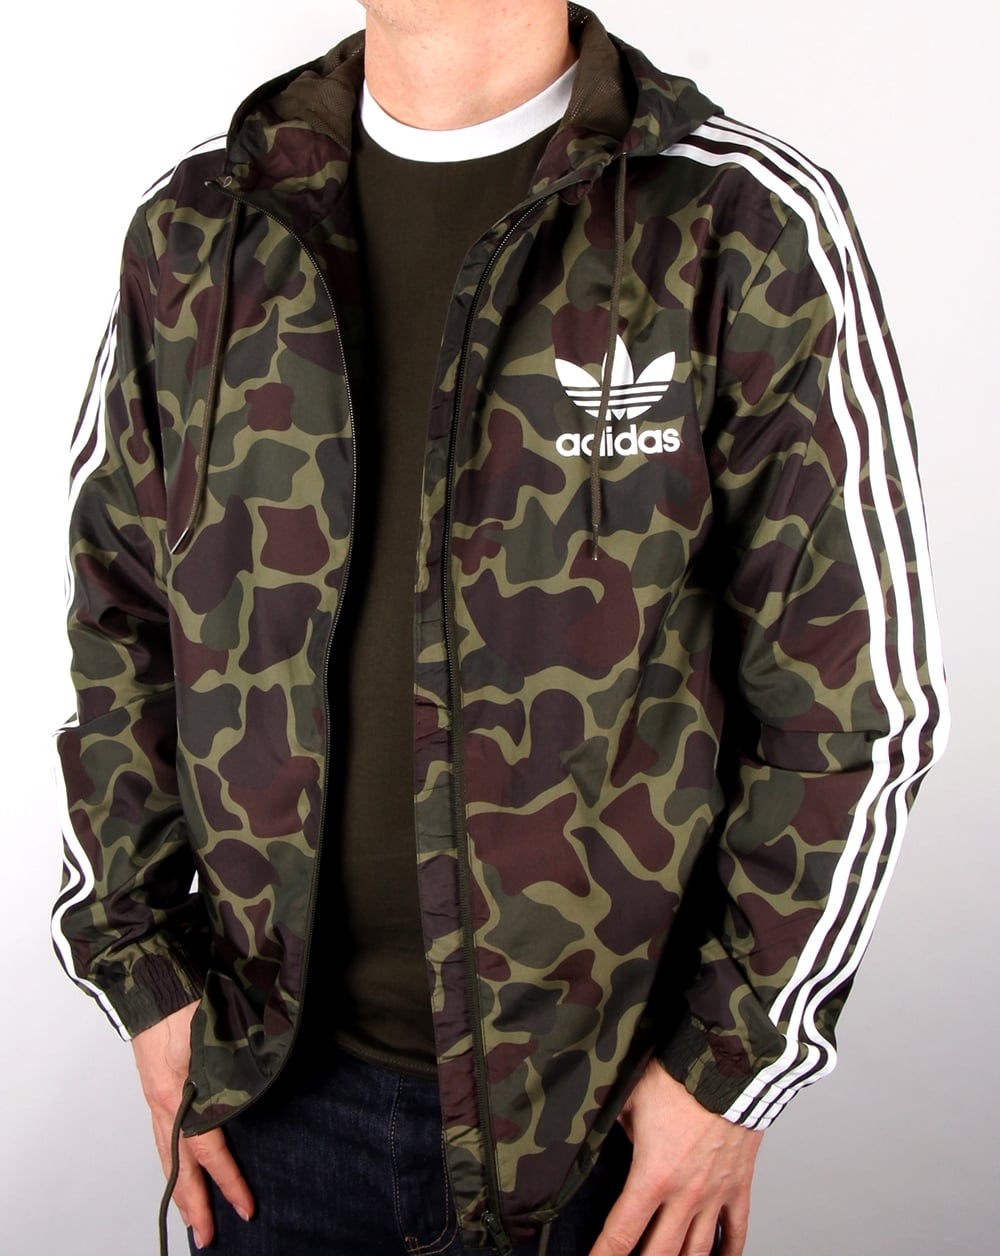 adidas originals camo windbreaker camo men 39 s jacket weather proof. Black Bedroom Furniture Sets. Home Design Ideas